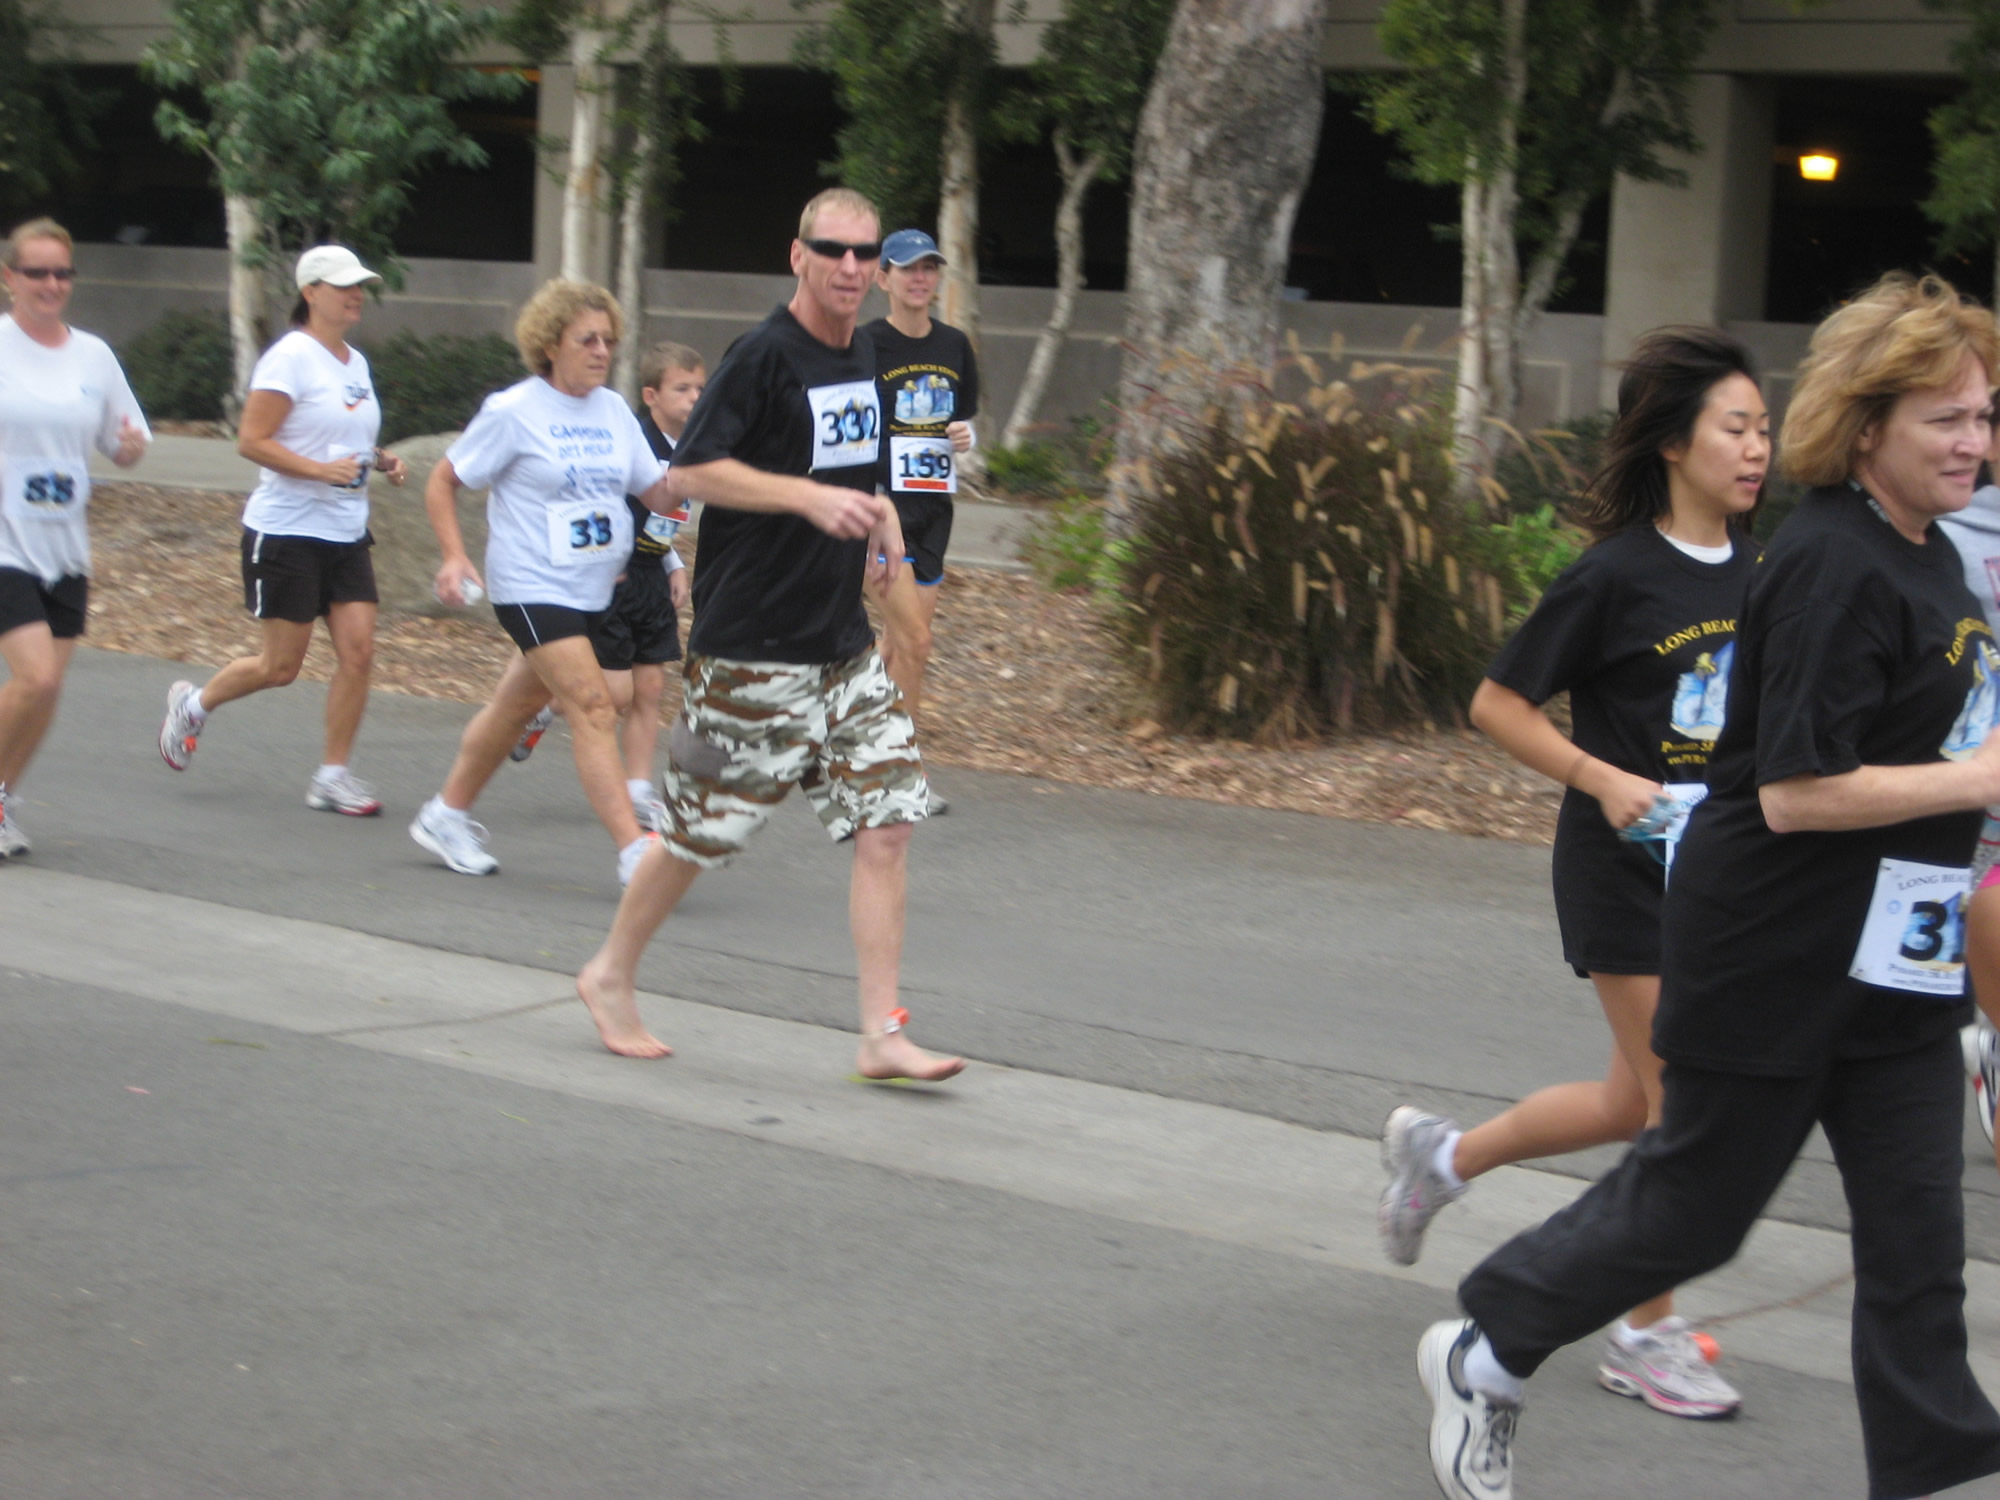 Kenneth McNeely (AKA Barefoot Kenny) Pyramid 5K ( 2009 November 8 ) Long Beach CA